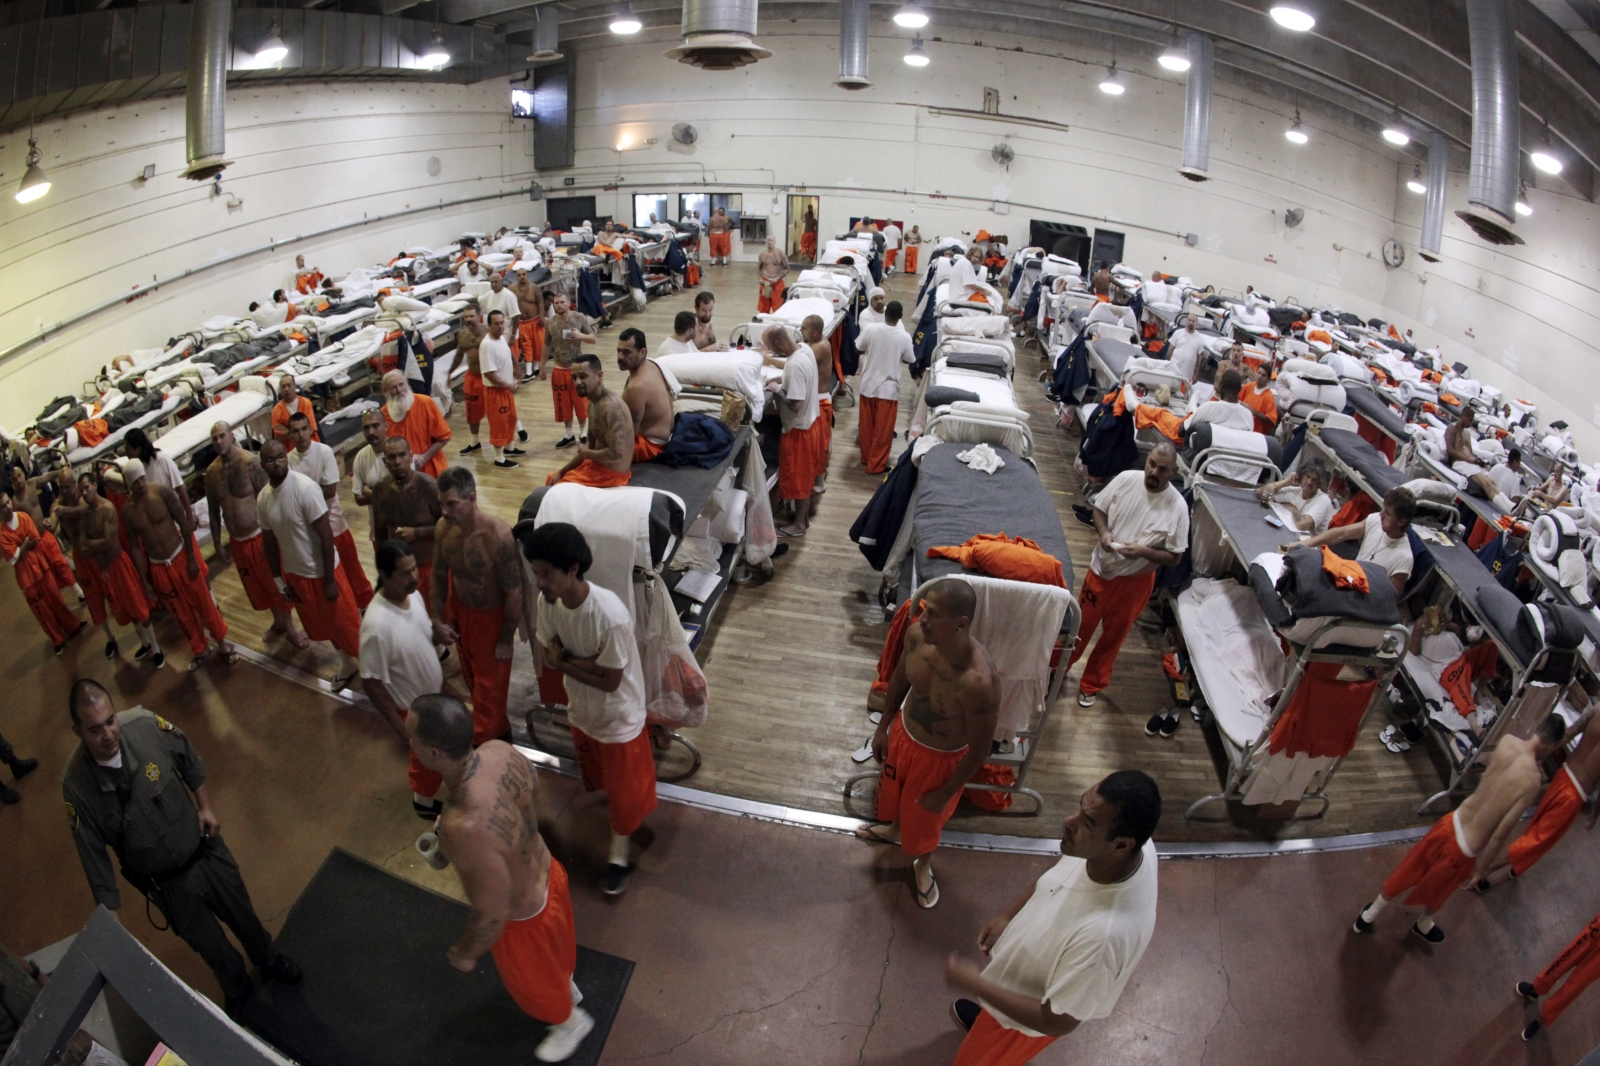 Fci Inmate Images - Reverse Search